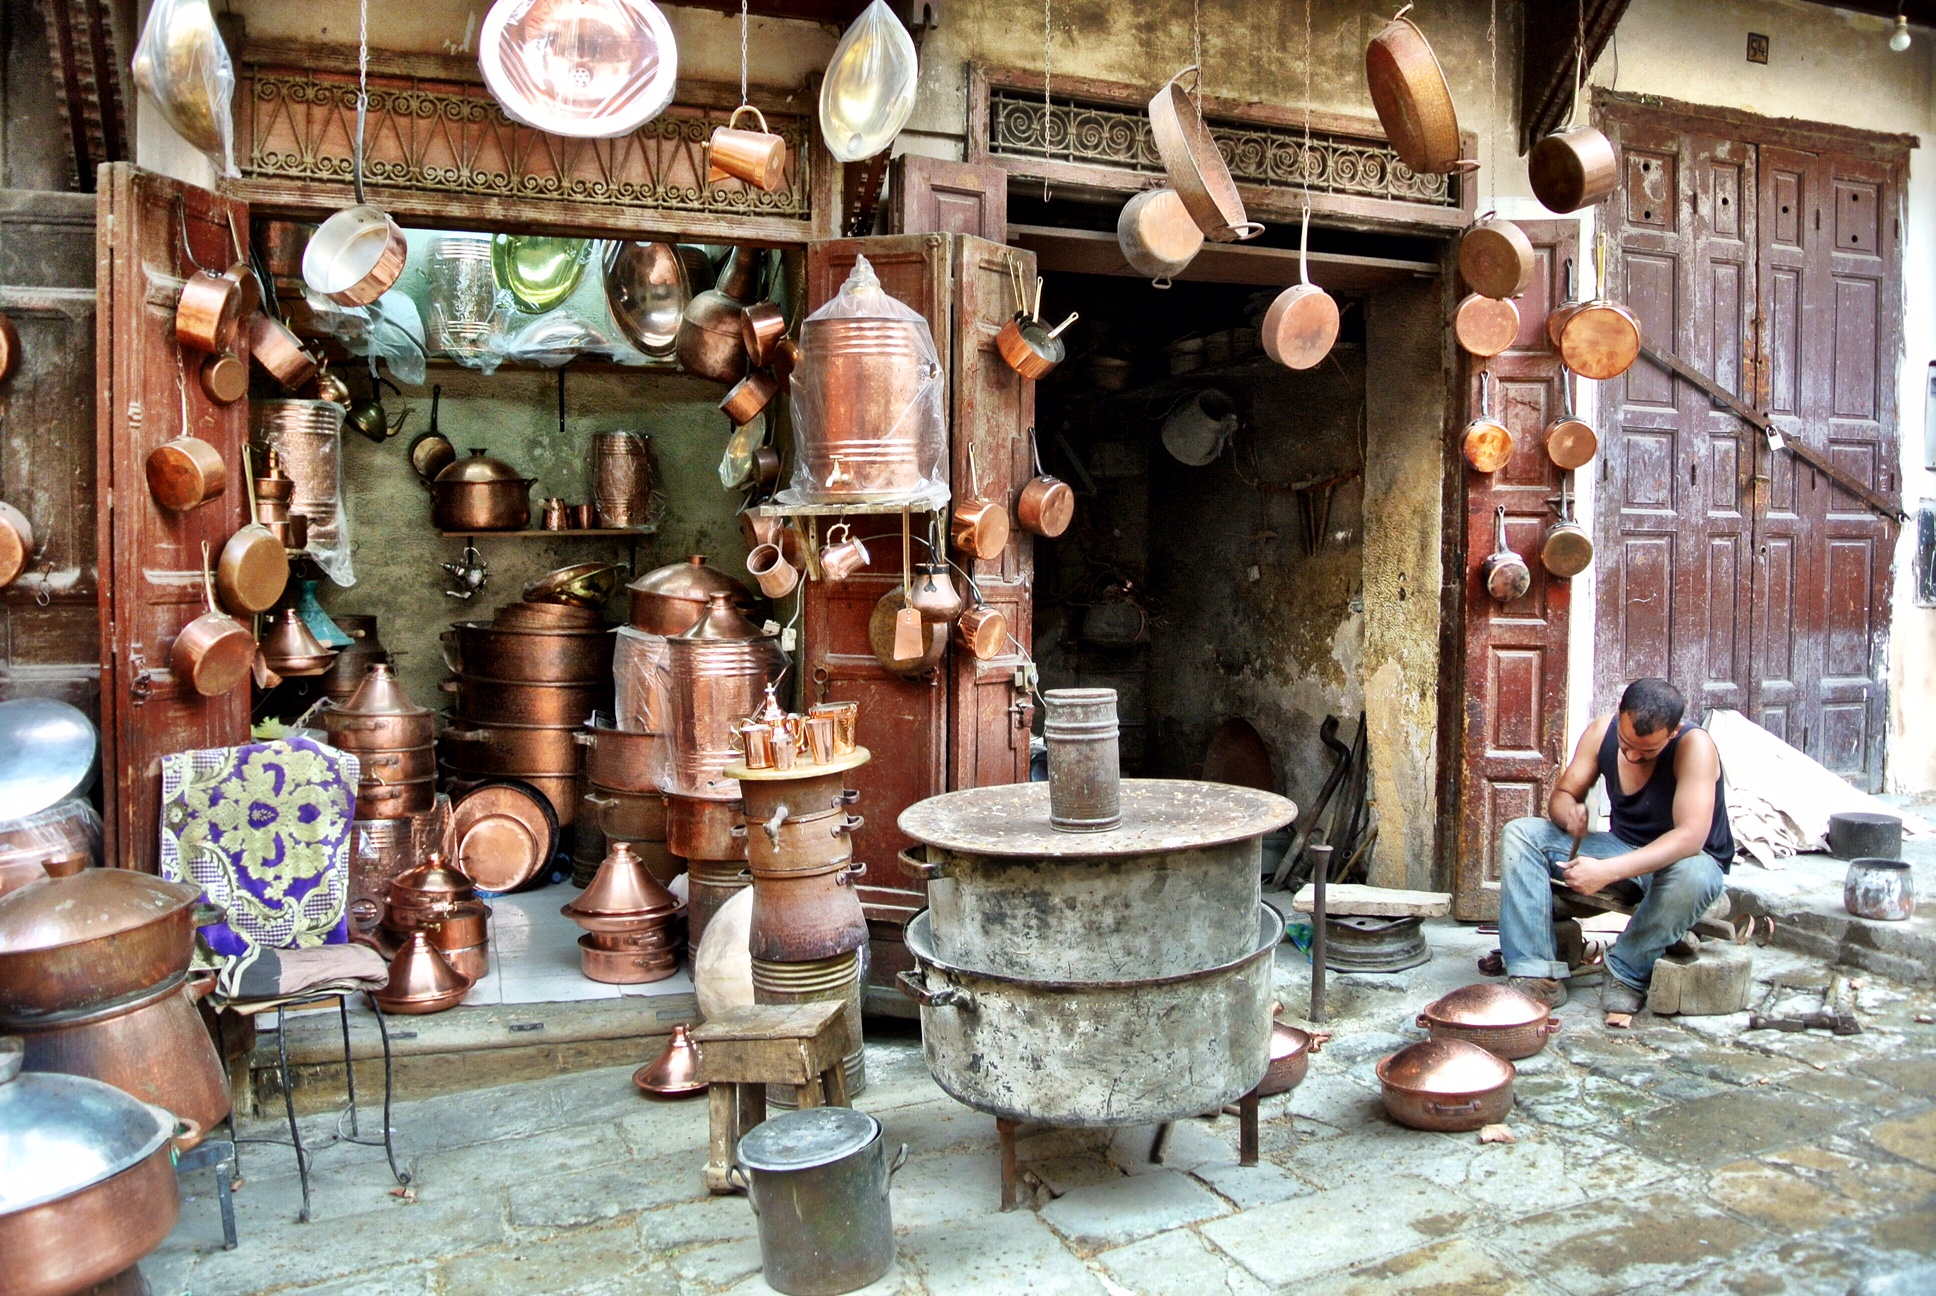 You'll hear the clanging before you turn the corner upon Place Seffarine, the metalsmiths' souk